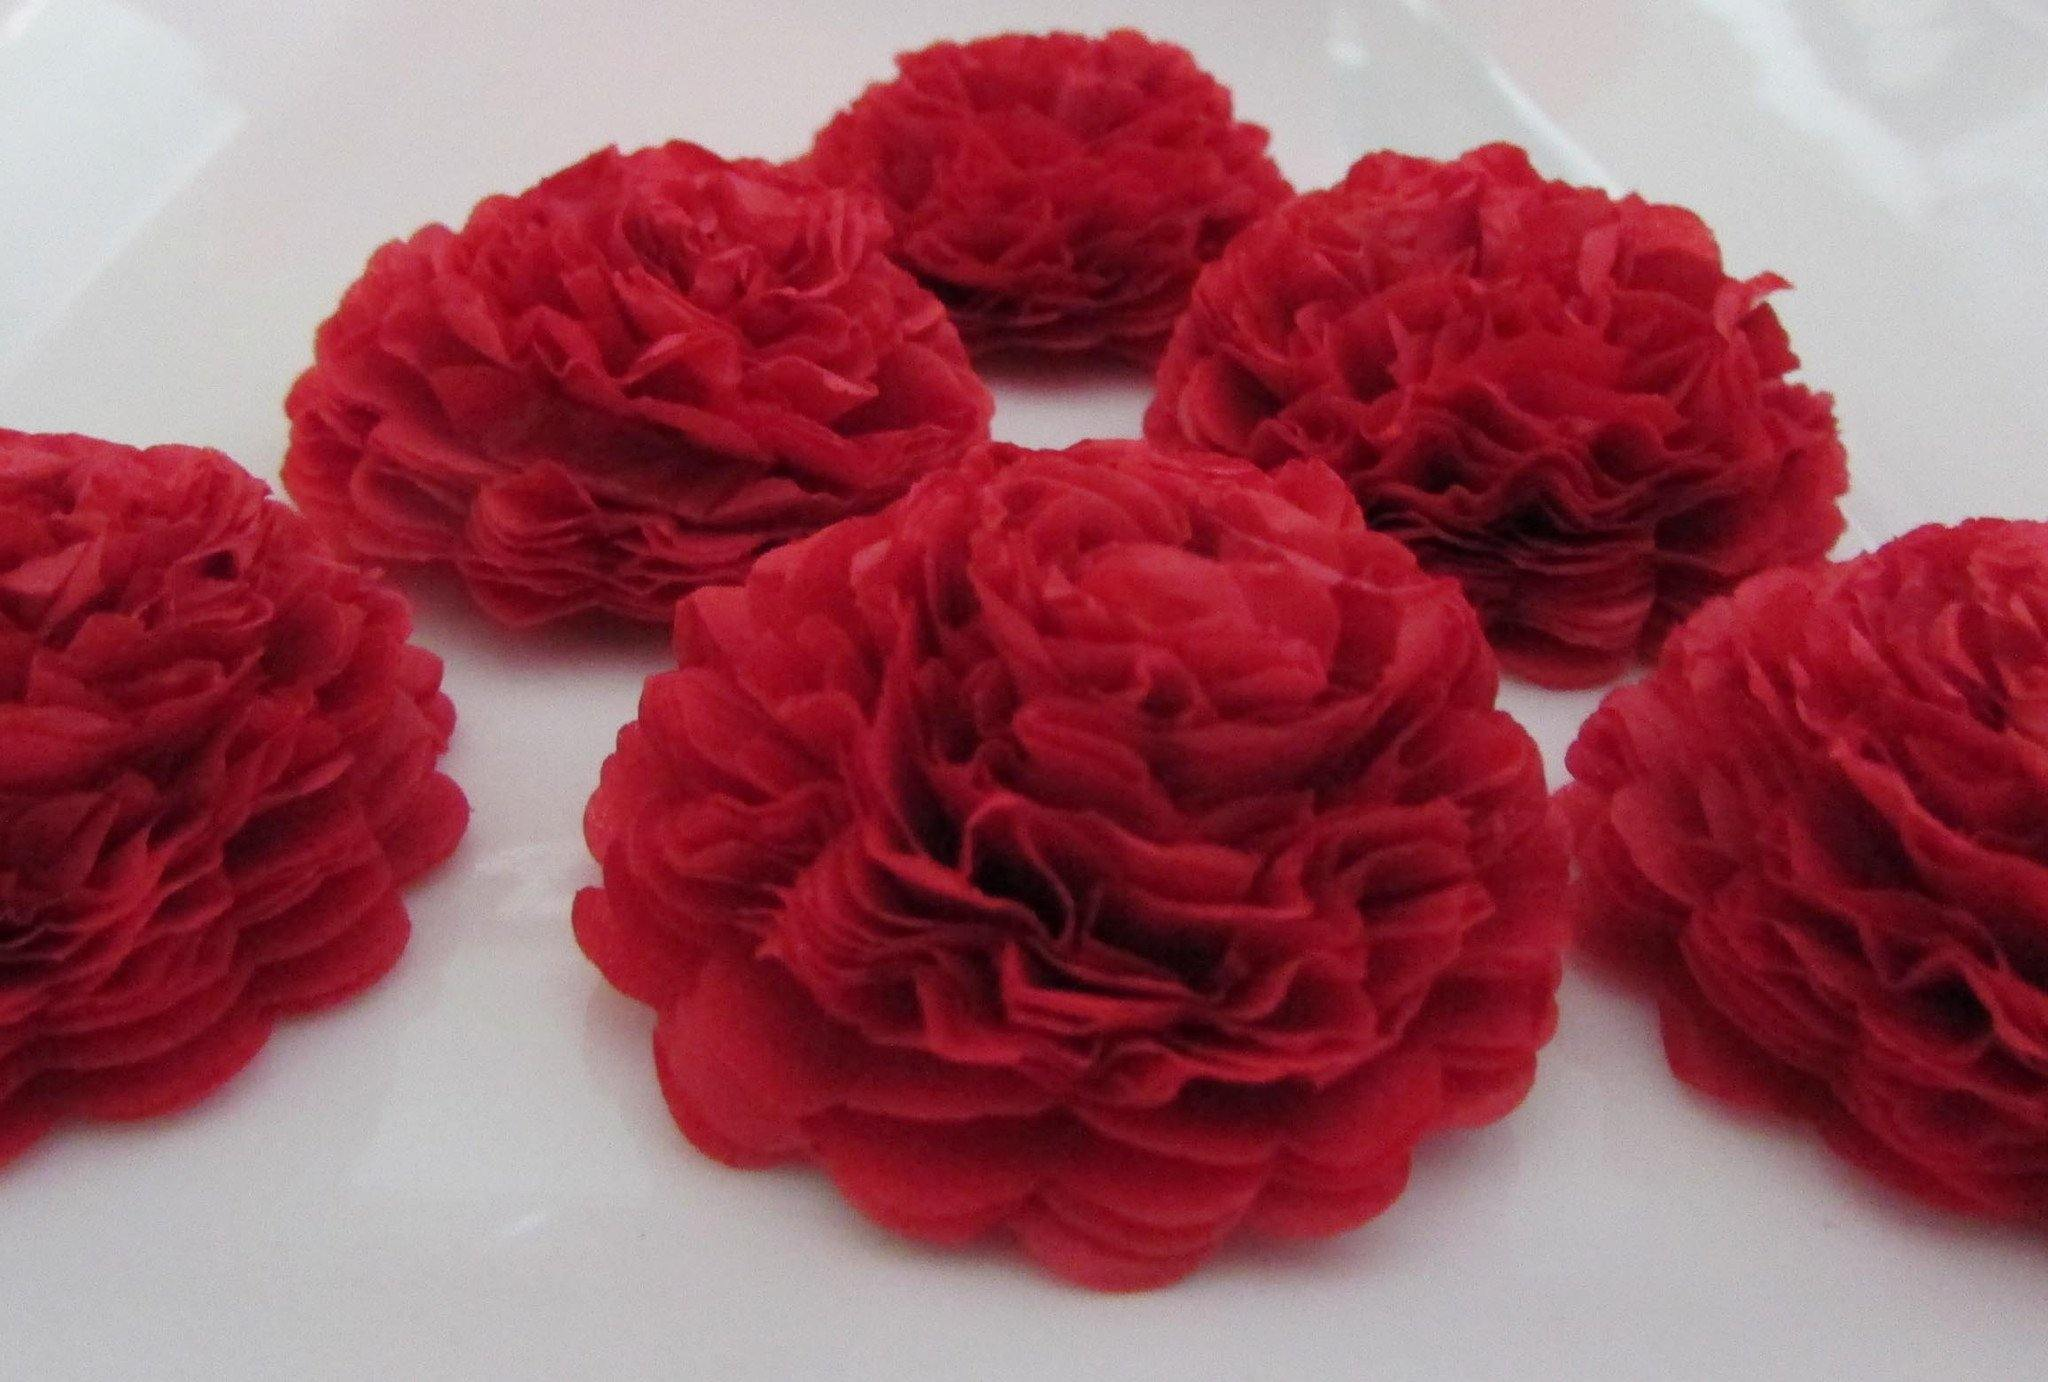 Red Button Mums Tissue Paper Flowers